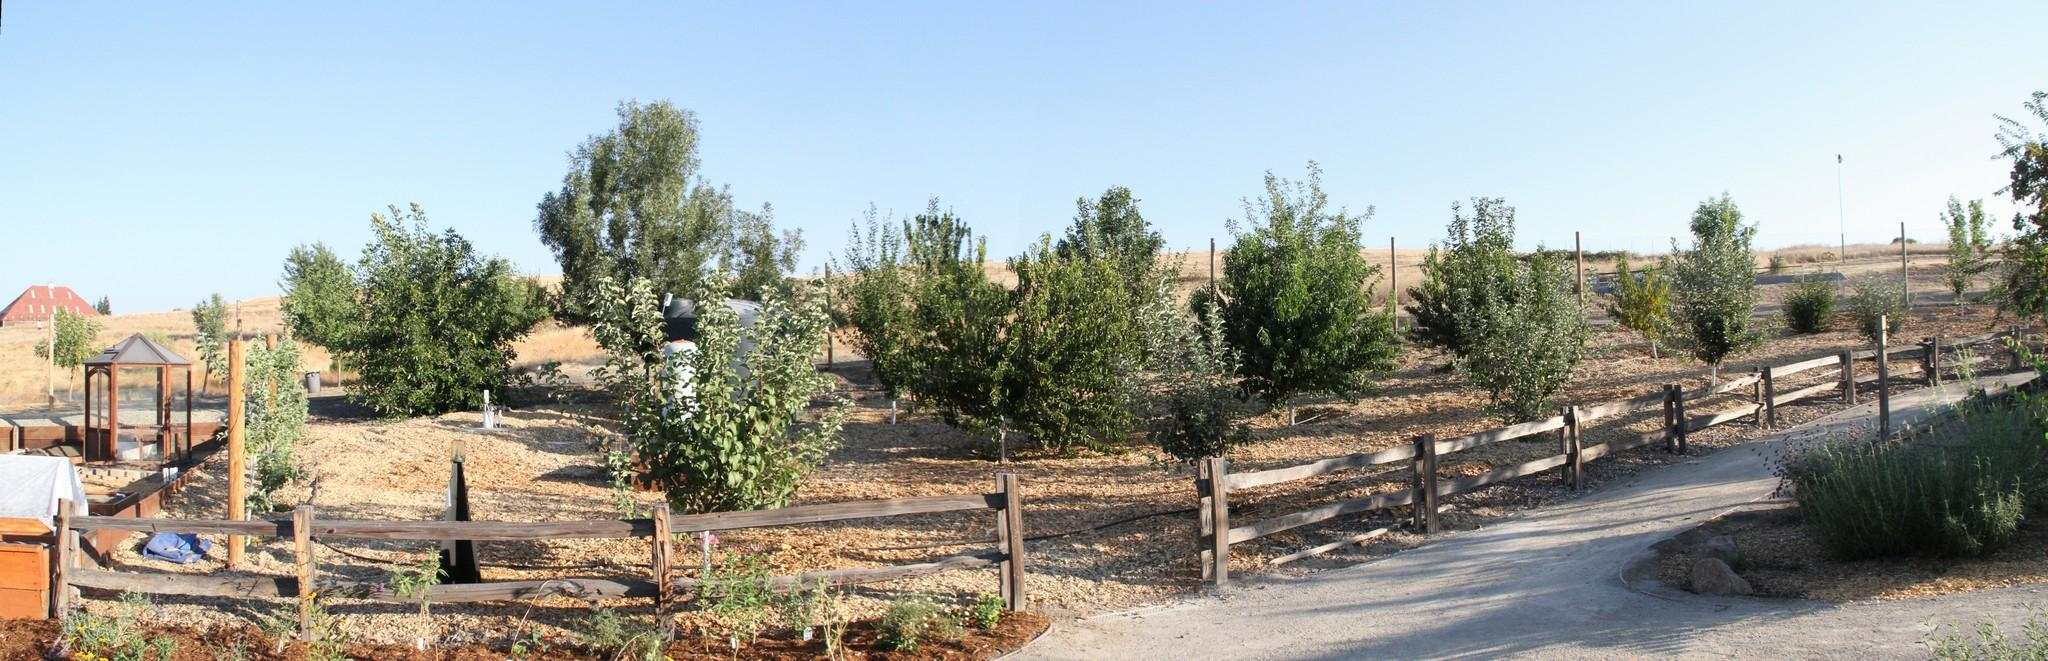 Orchard Panorama